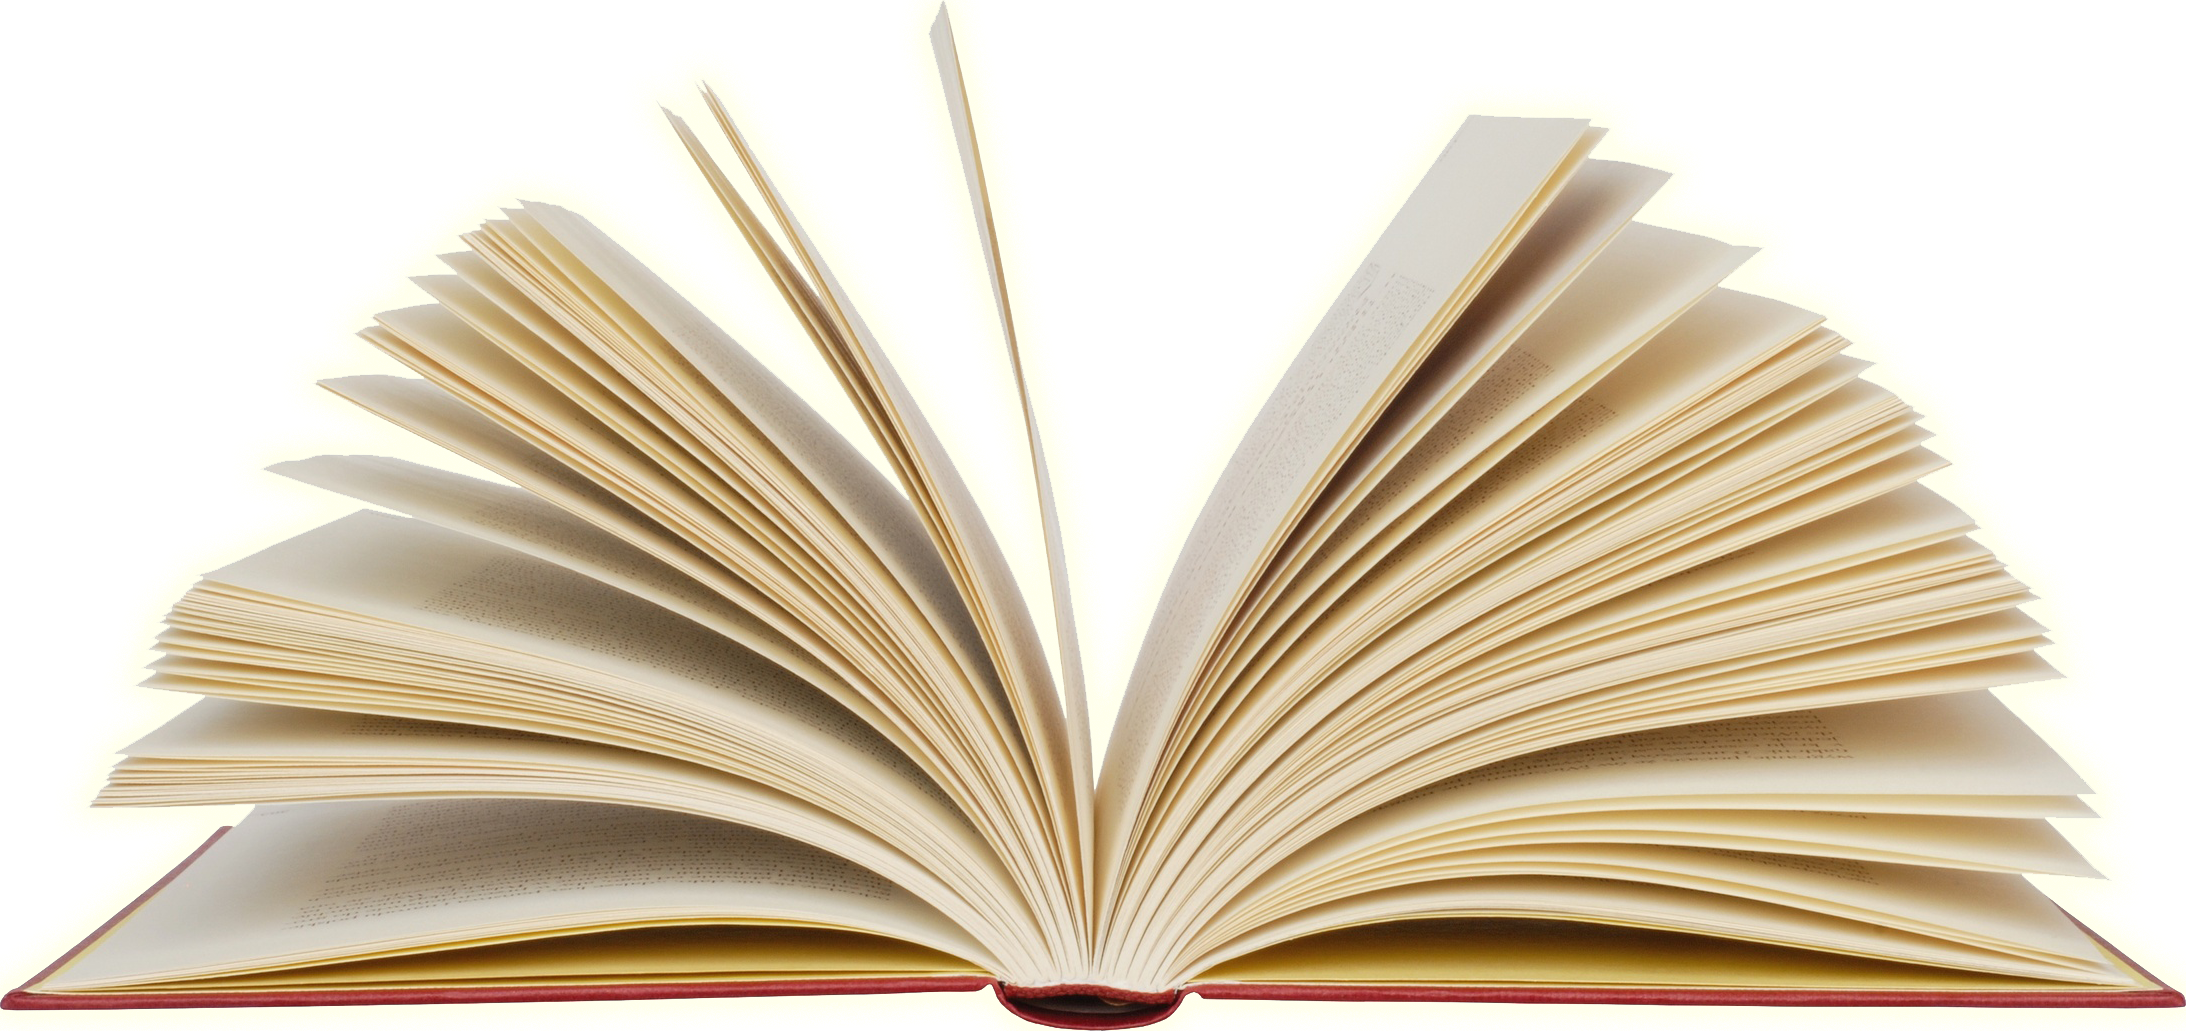 Book PNG images download, open book PNG graphic royalty free library